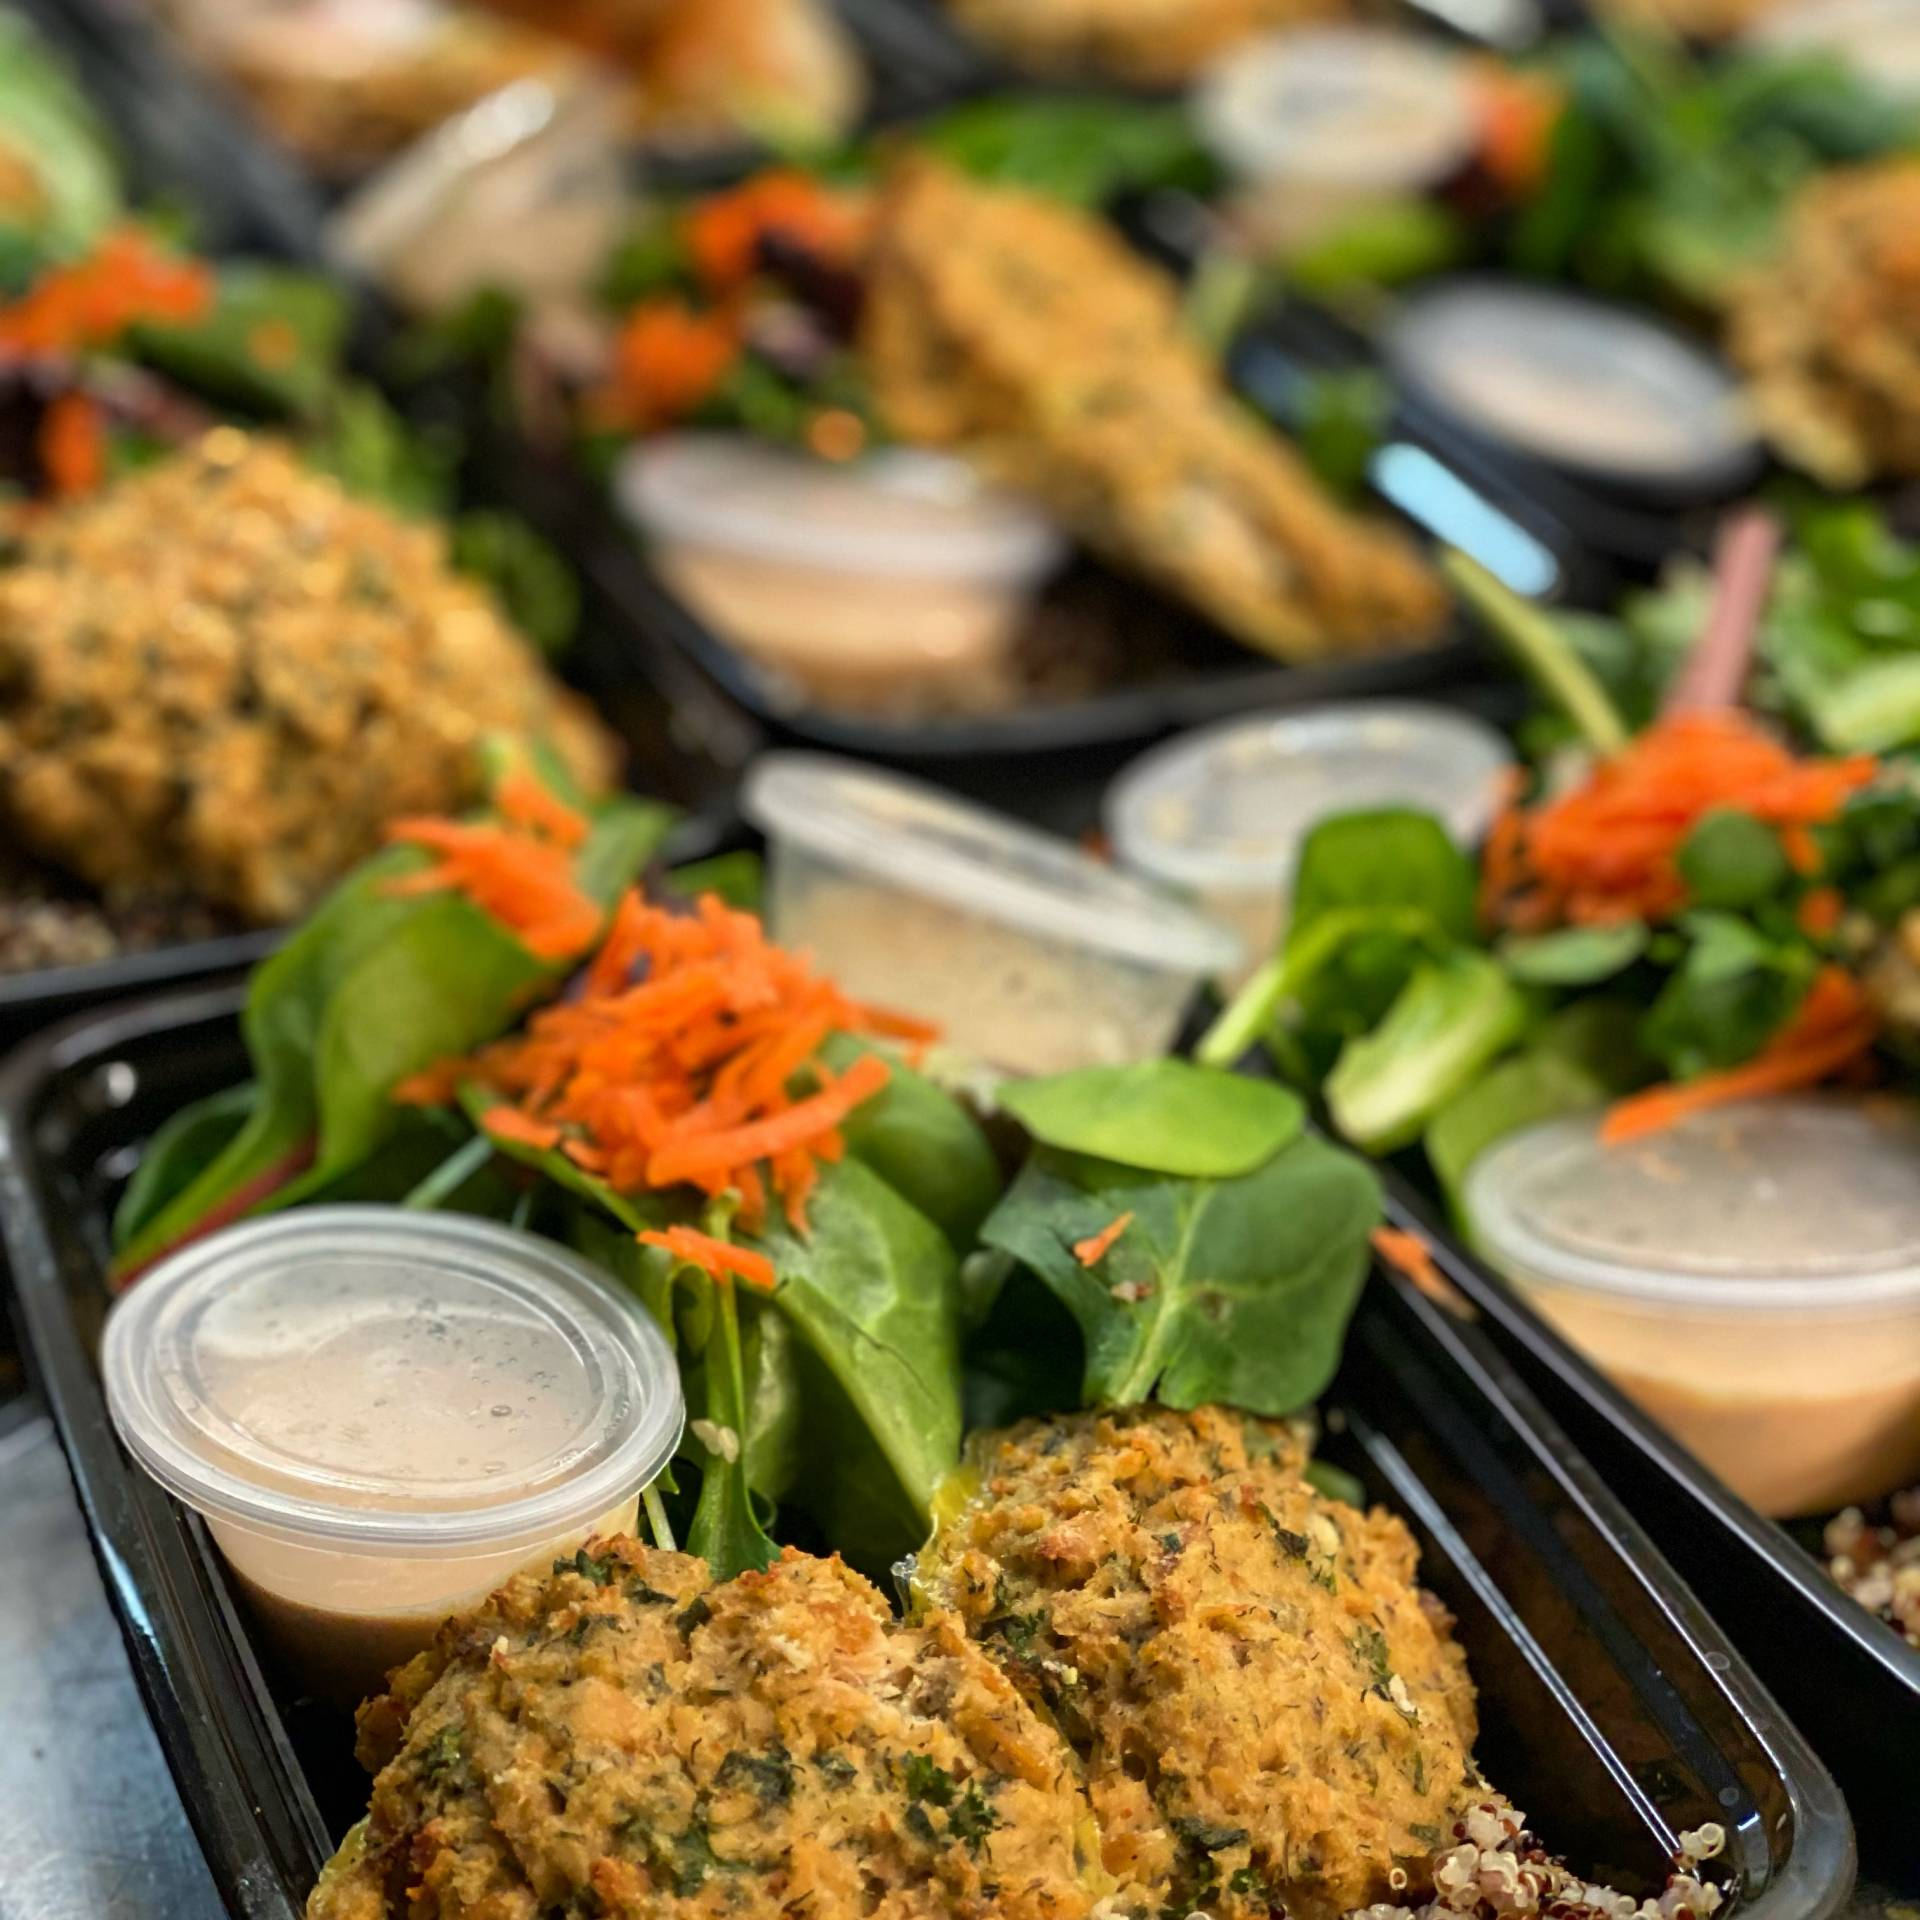 Salmon Cakes with a Spicy Aioli, Salad, and Quinoa